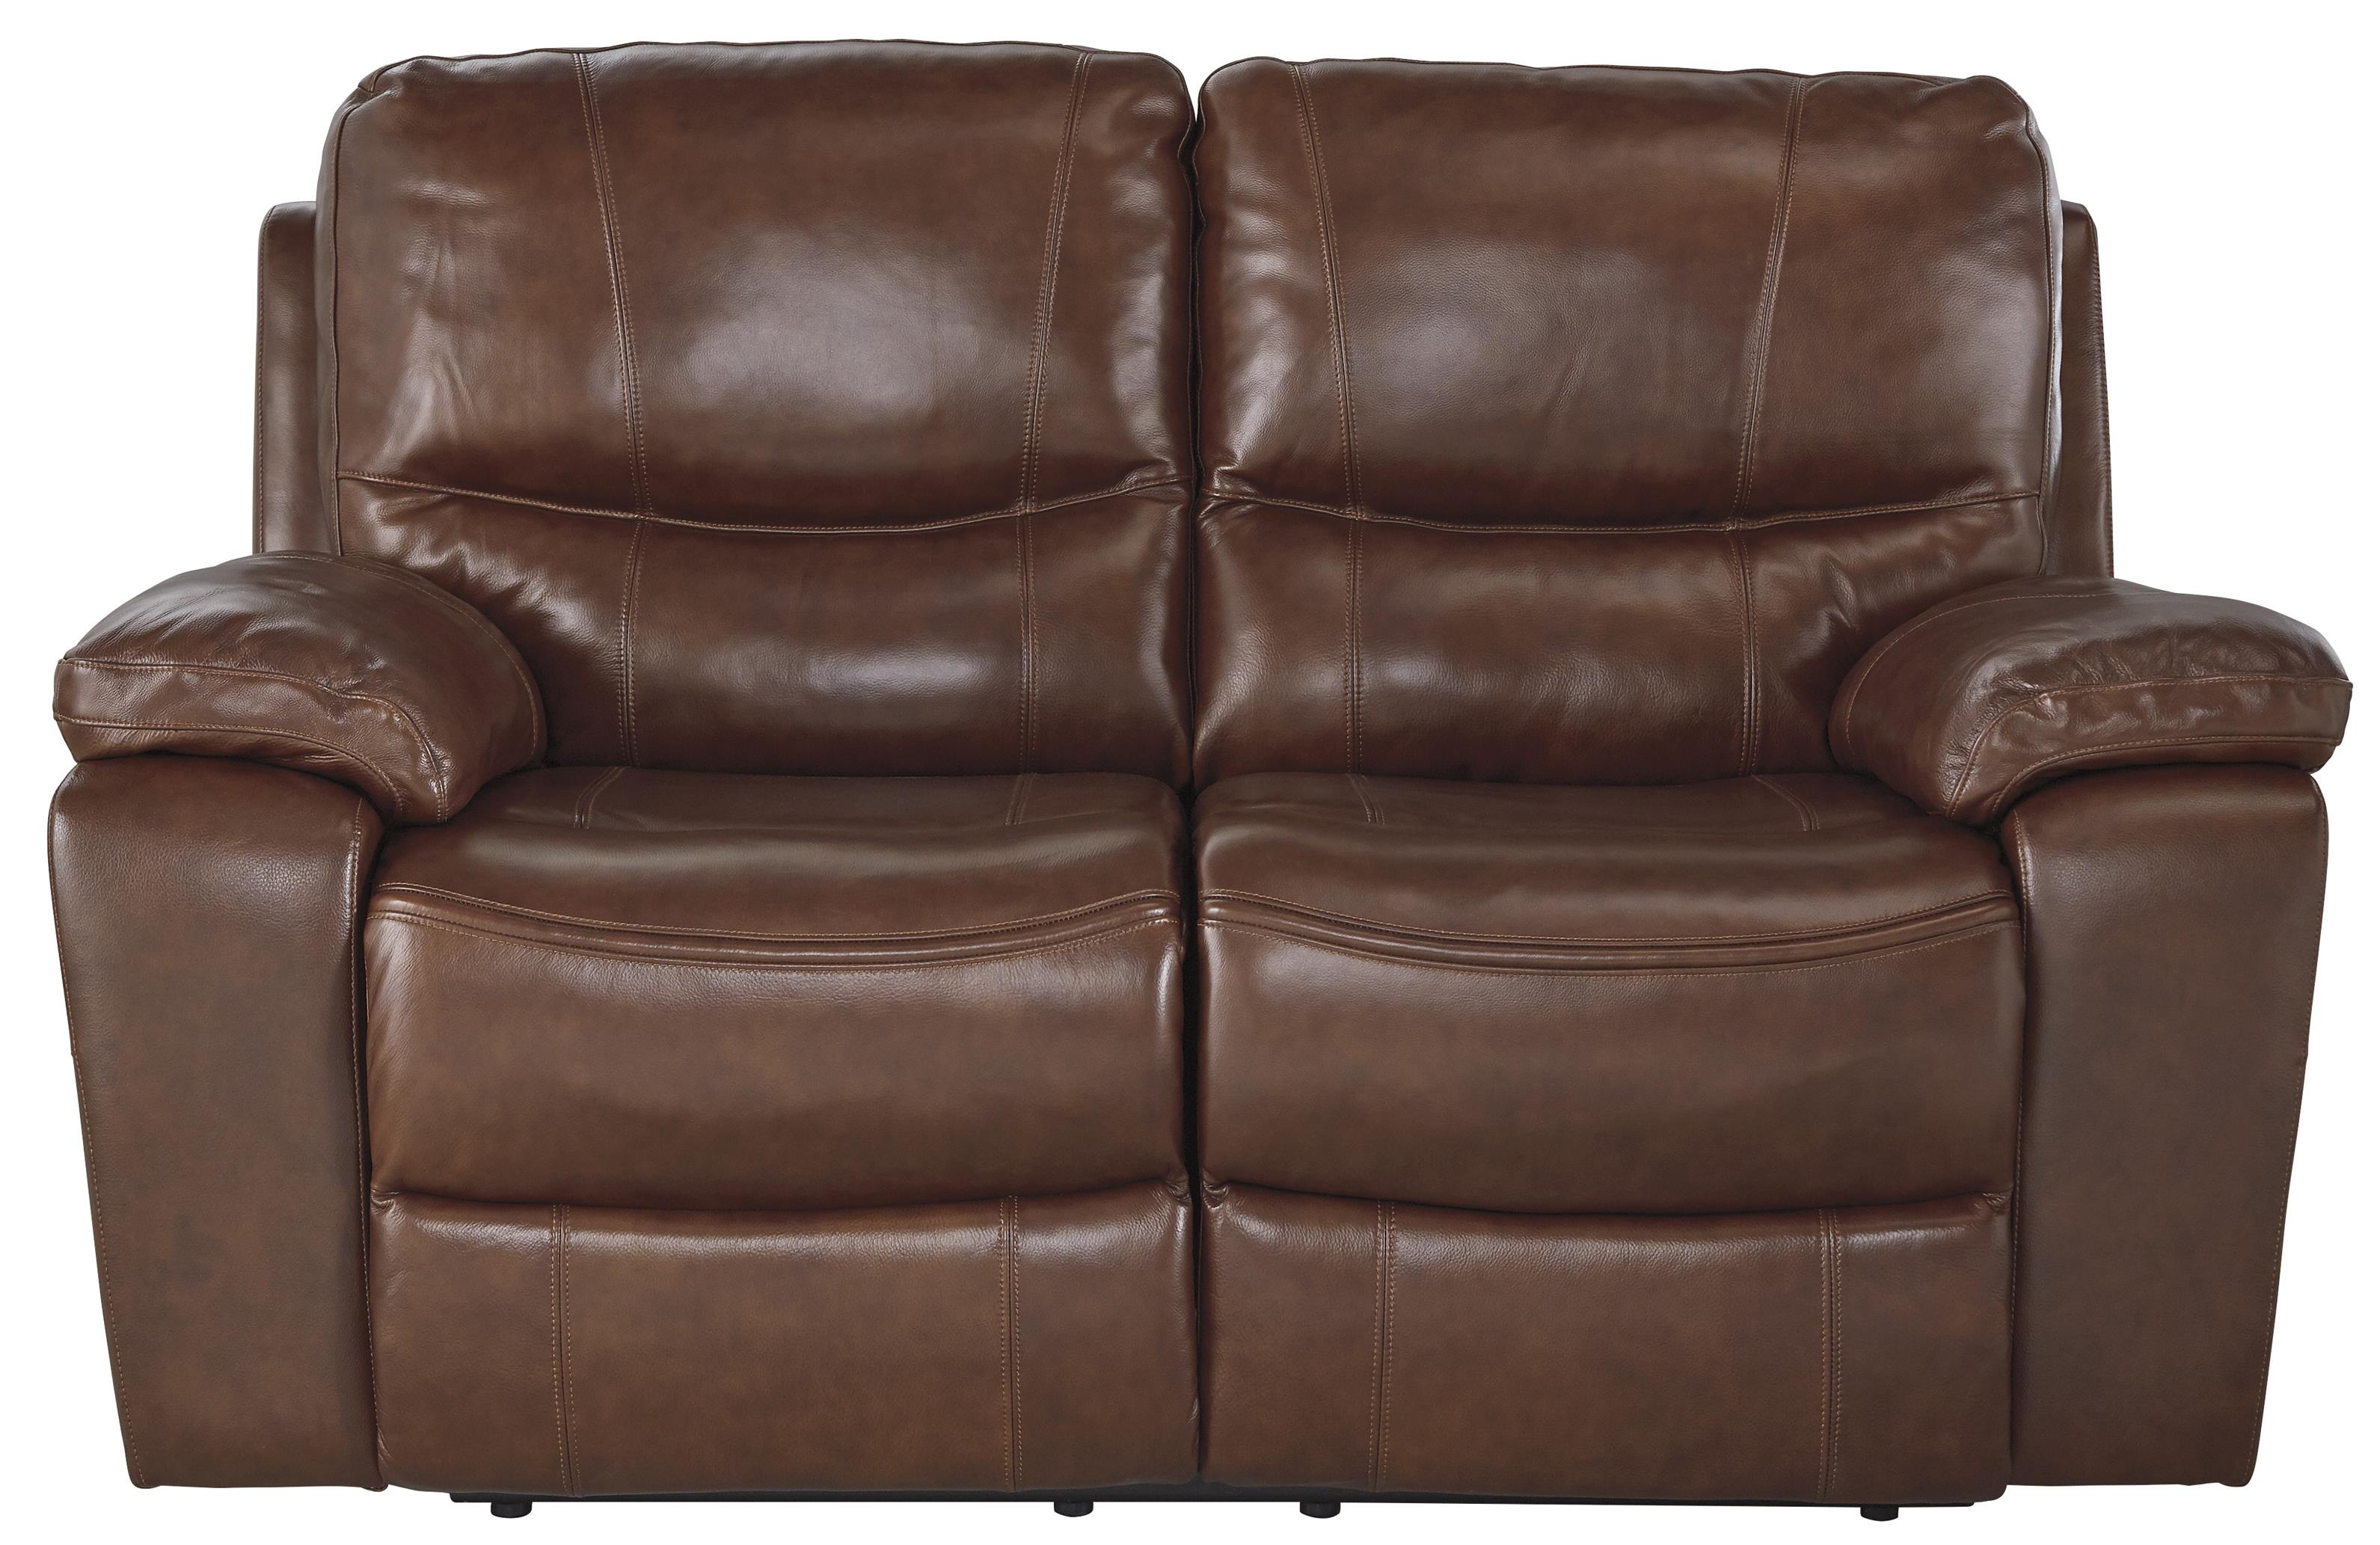 Signature Design by Ashley Panache Reclining Power Loveseat - Item Number: U7290074